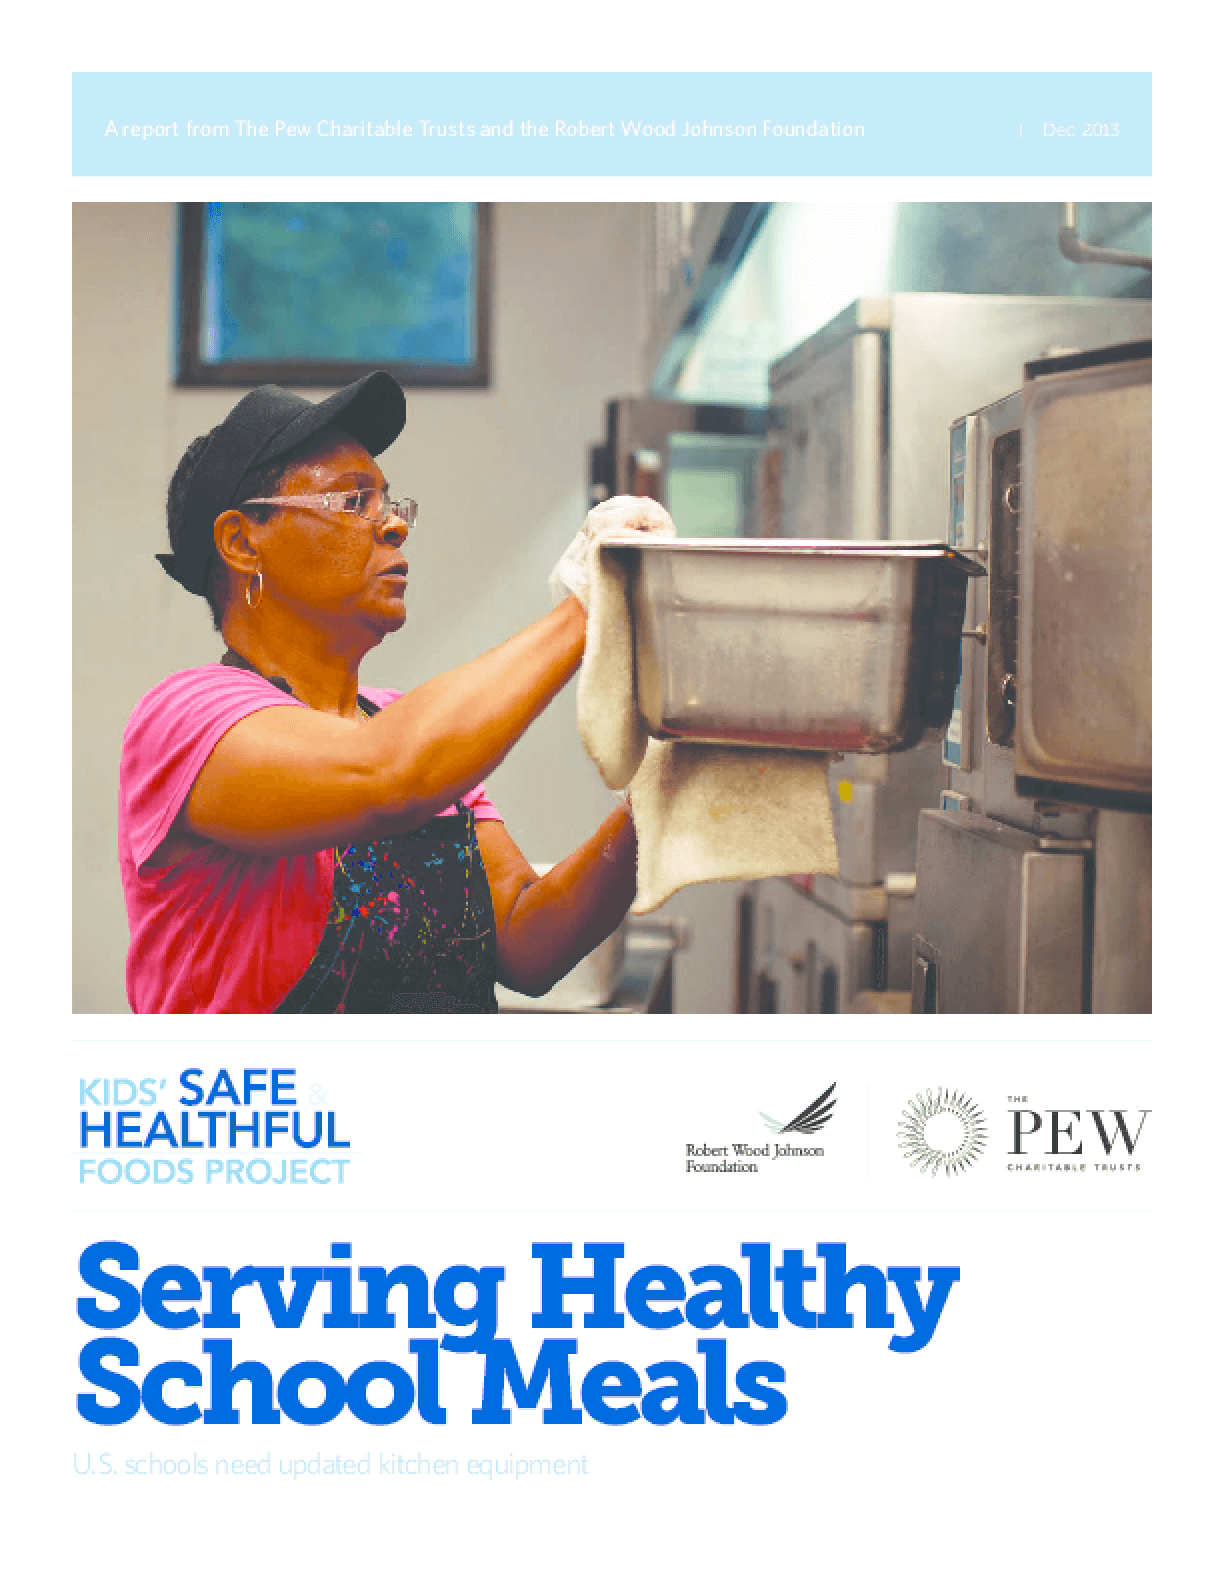 Serving Healthy School Meals: U.S. Schools Need Updated Kitchen Equipment